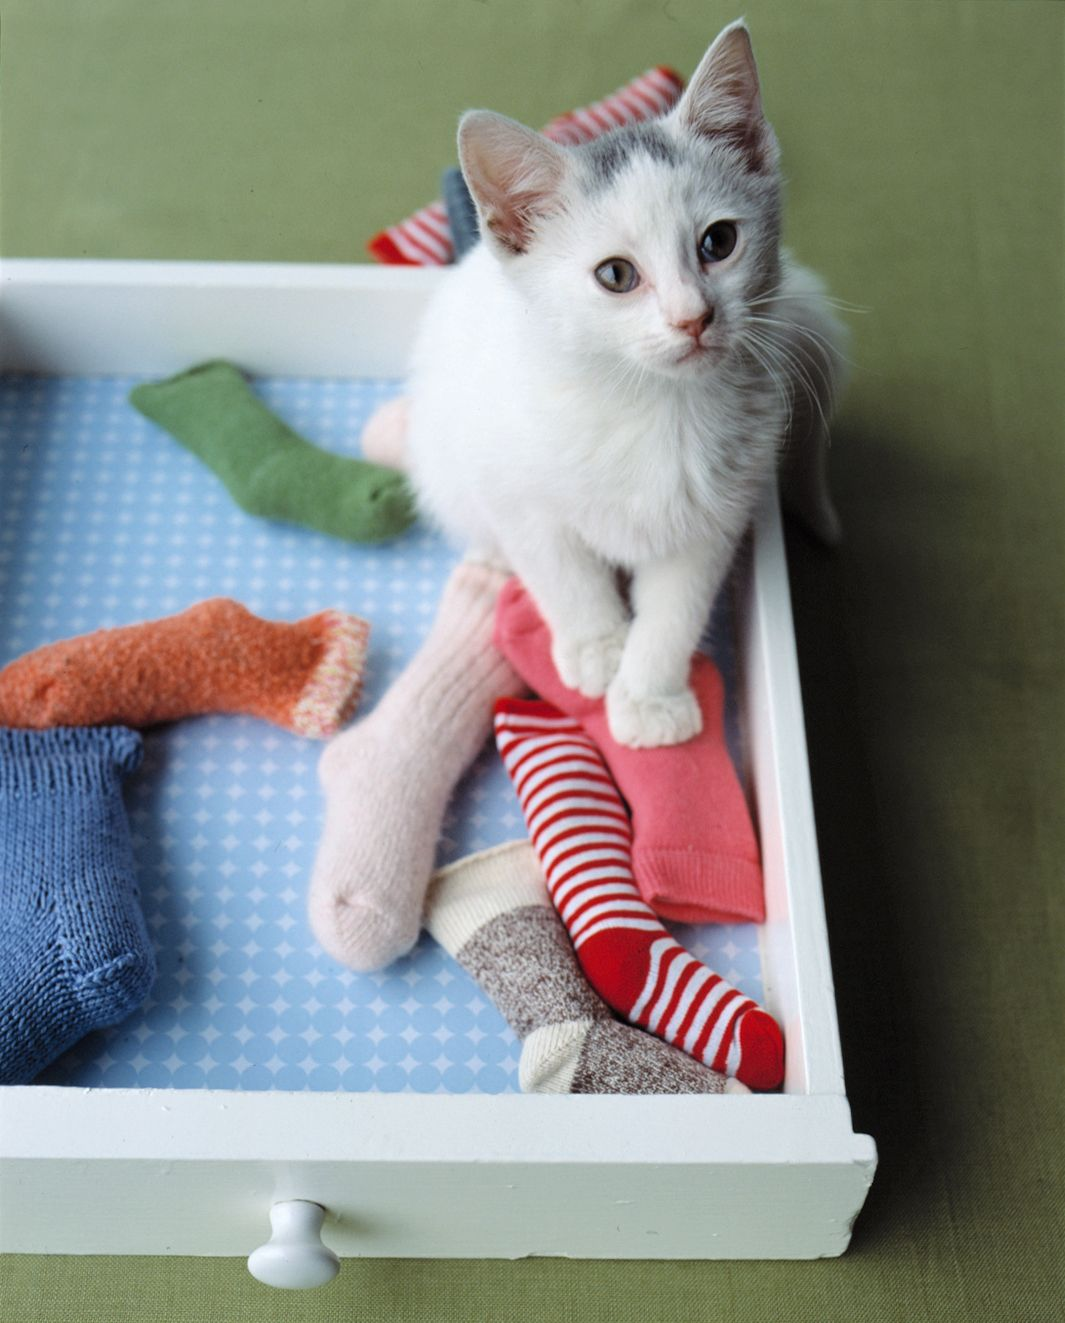 10 Diy Cat Toys And Games That You Can Make At Home Cat Toys Diy Cat Toys Cat Diy